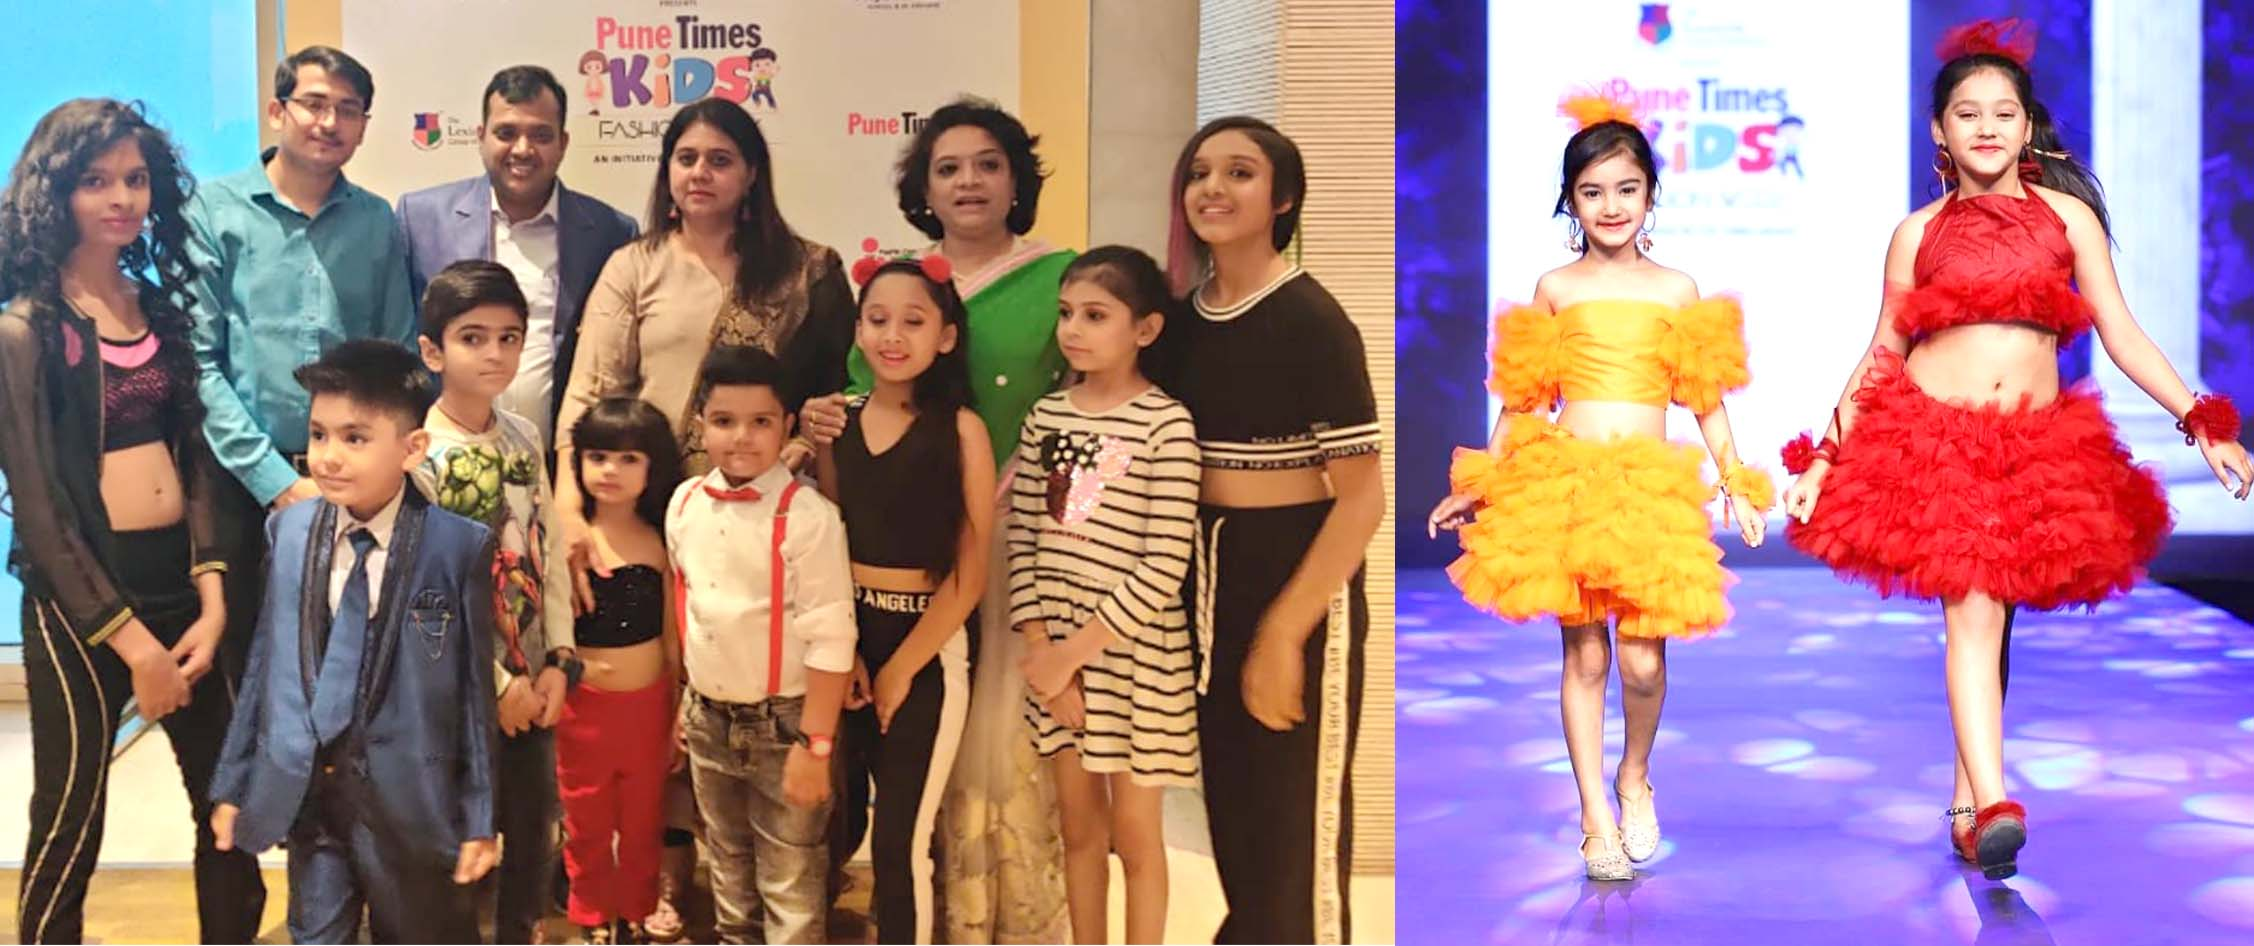 CHASA IDT fashion students showcased their collection and kids models walked the ramp at Kids Fashion Week, Pune